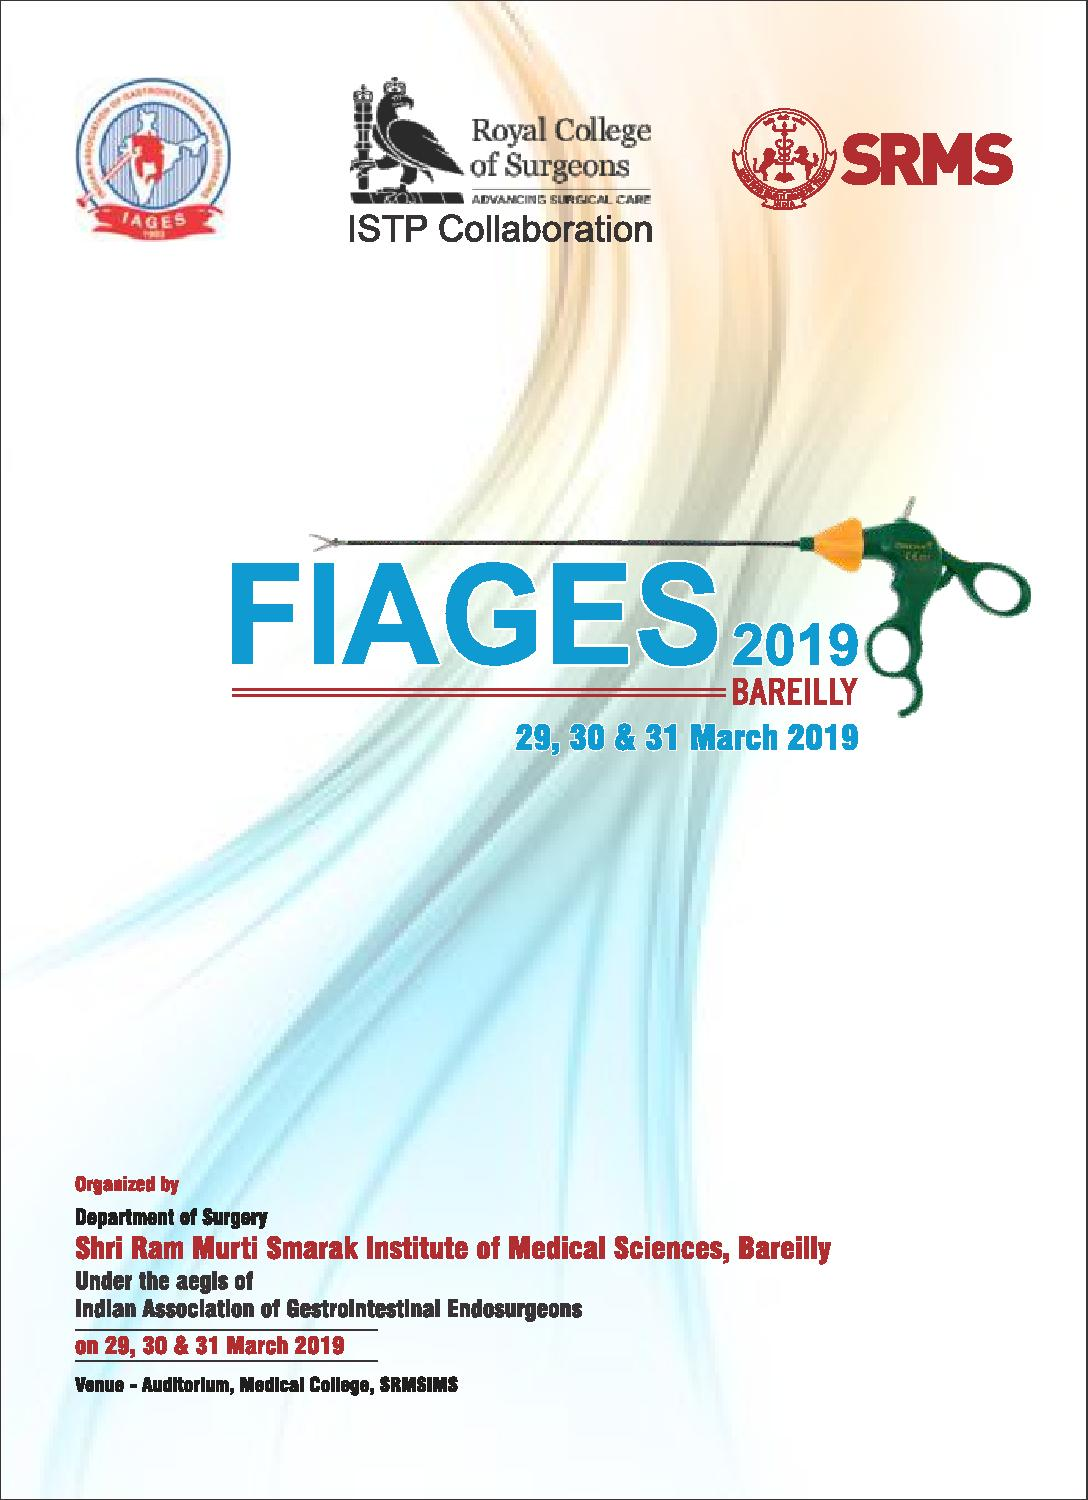 FIAGES 2019